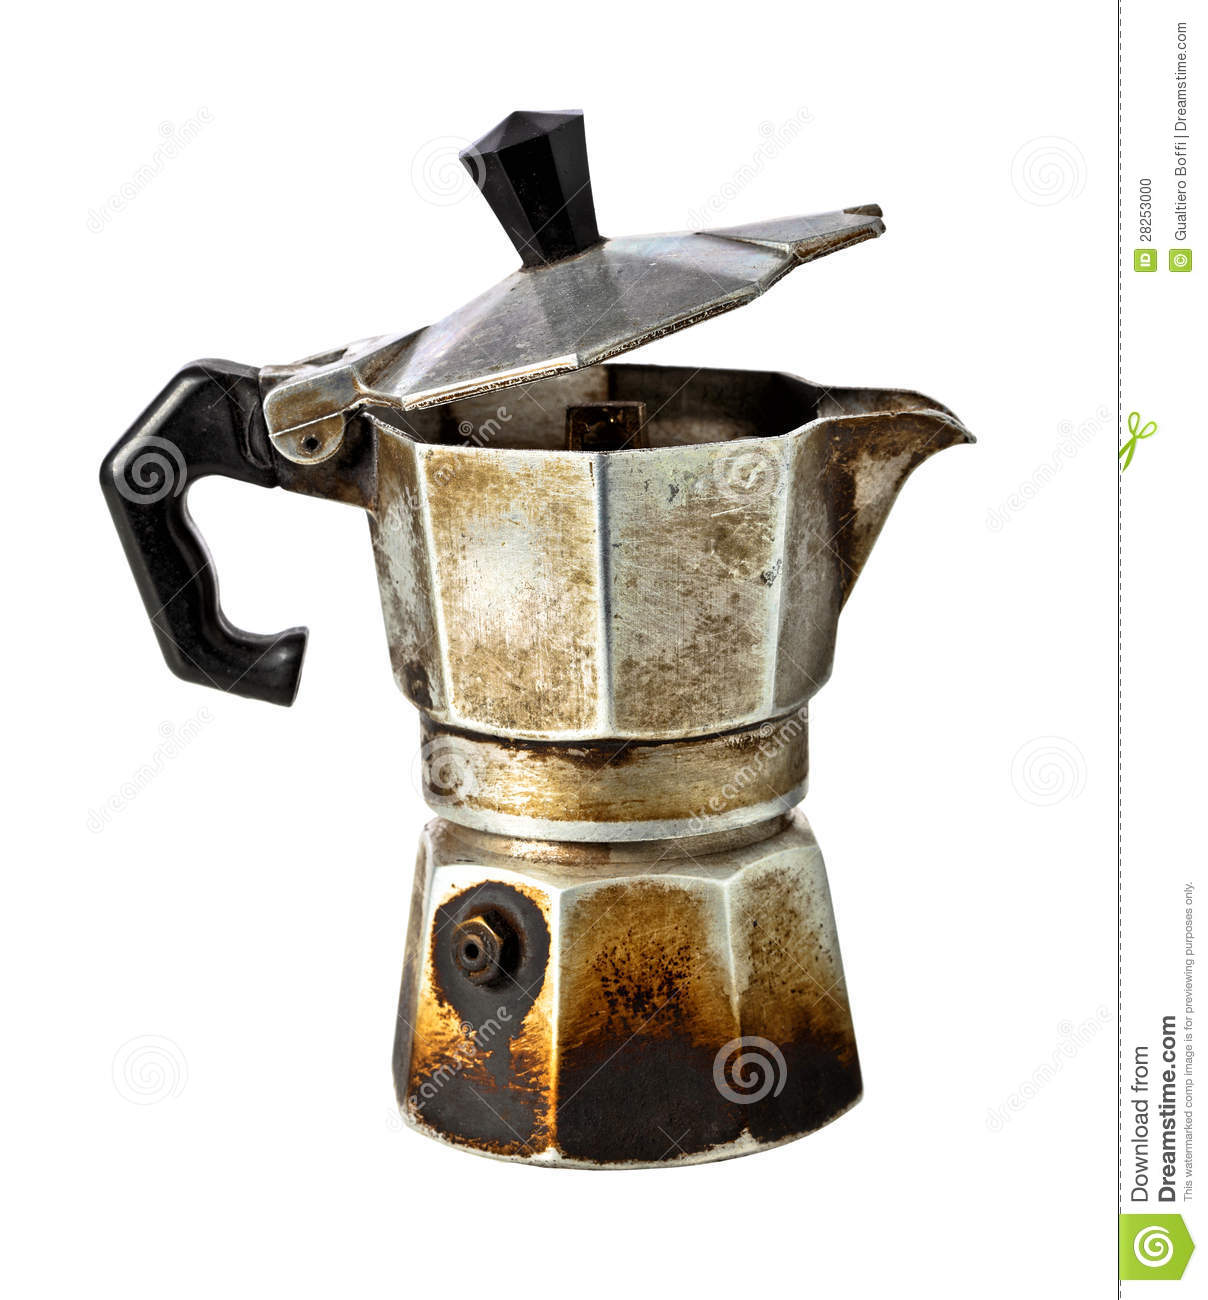 Old Mr Coffee Maker : Coffee Maker Stock Photo - Image: 28253000